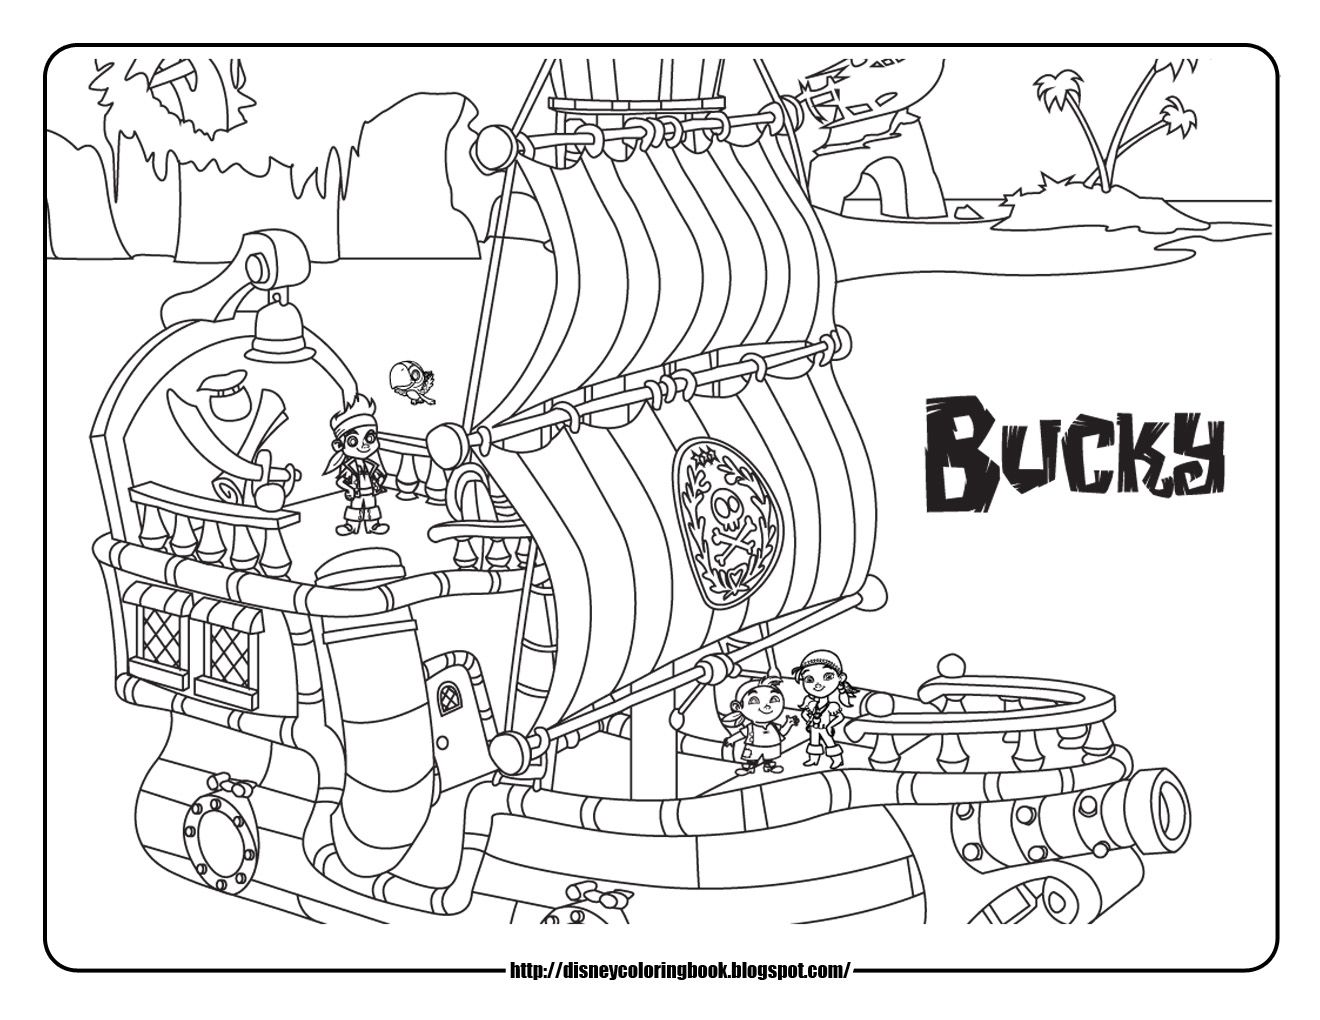 jake and the never land pirates pirate ship coloring pages bucky ...